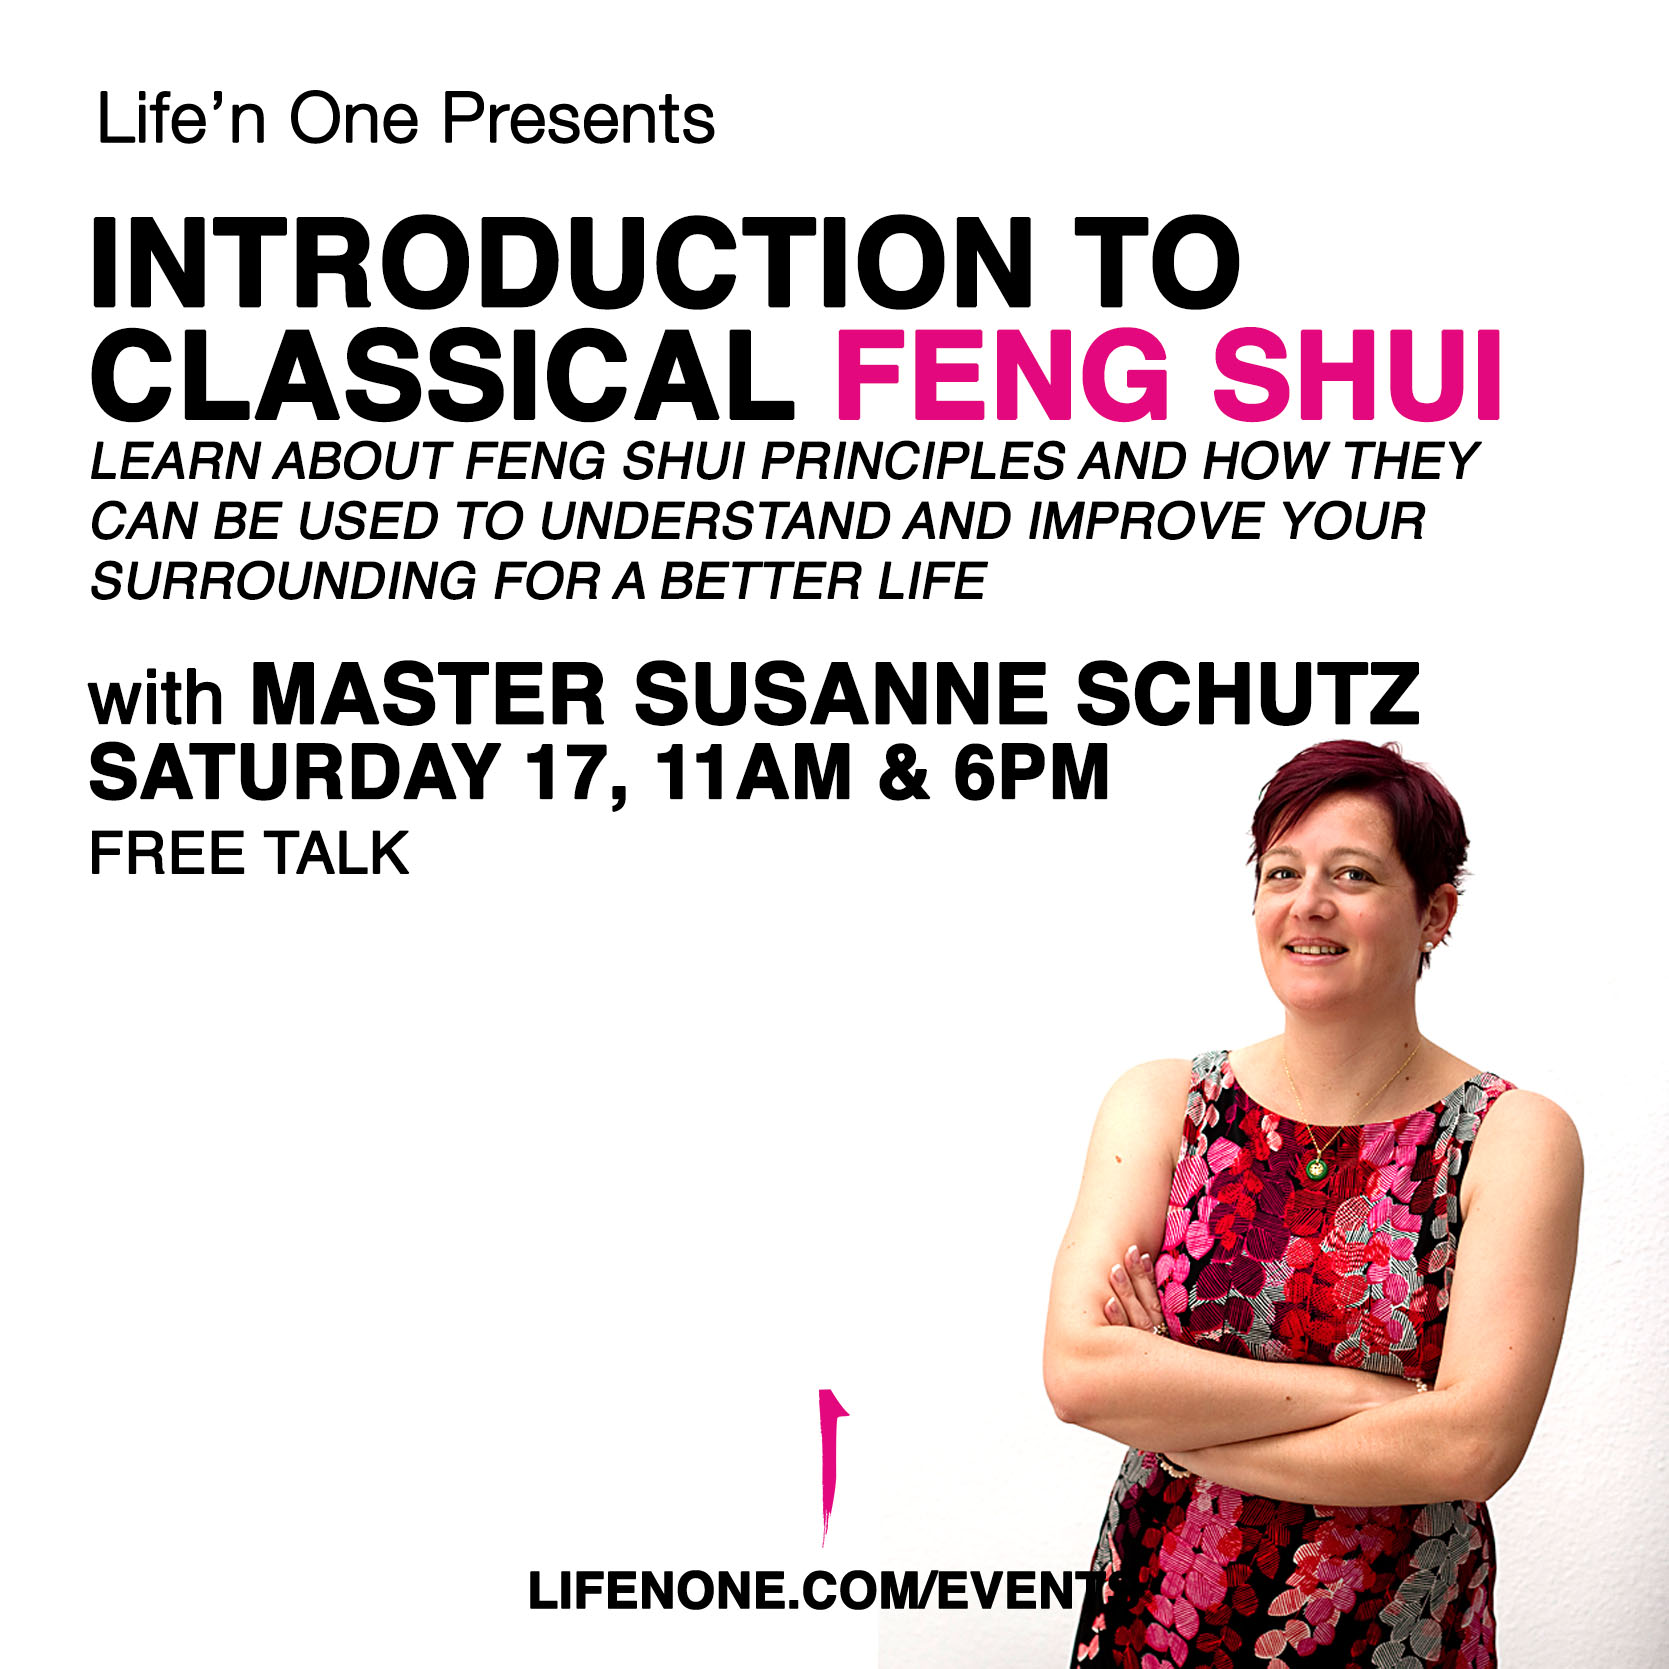 Introduction to Classical Feng Shui with Master Susanne Schutz